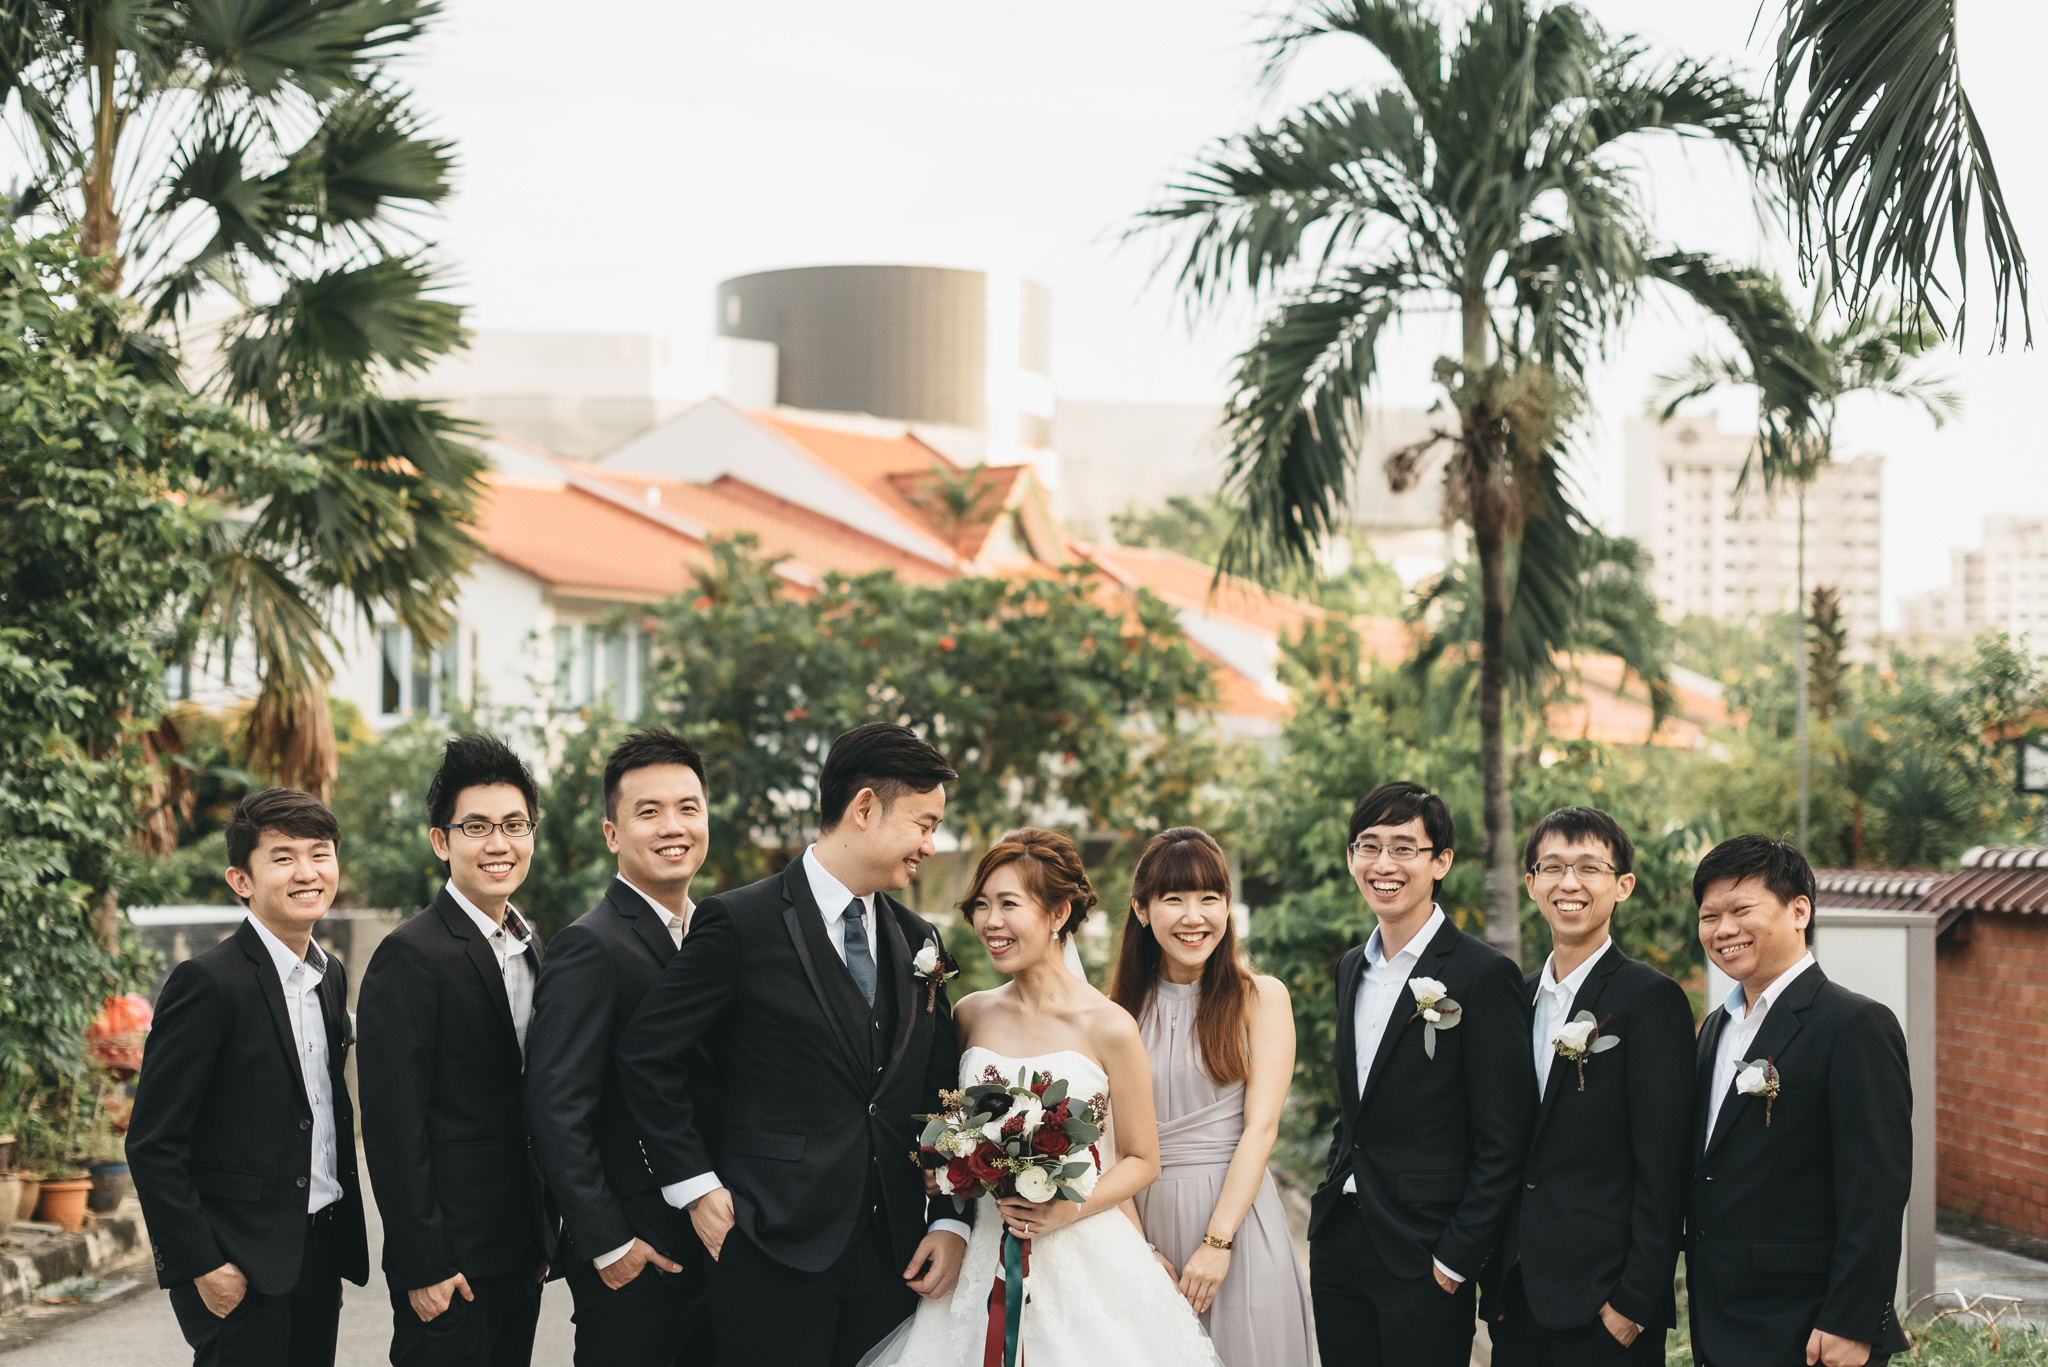 Shaun & Zhirong - I first got to know Junwei through a colleague while working overseas. Both my husband and I found him really sincere and genuine in providing a quality service. His packages are affordable, but his services and passion in capturing the most authentic moments for us are priceless.We loved how he works by bouncing off ideas with our videographer during our wedding. We were also very impressed with the well-edited photos for our express photo highlights - they were so beautifully captured and mesmerising it was a challenge to look away from them while hosting our dinner banquet!If you're not a fan of posed shots and prefer natural and fun photos, Junwei is the one to go for. We are so glad to have Junwei as our photographer for our special day. Thanks for bringing out the best in us! Keep up the good job!